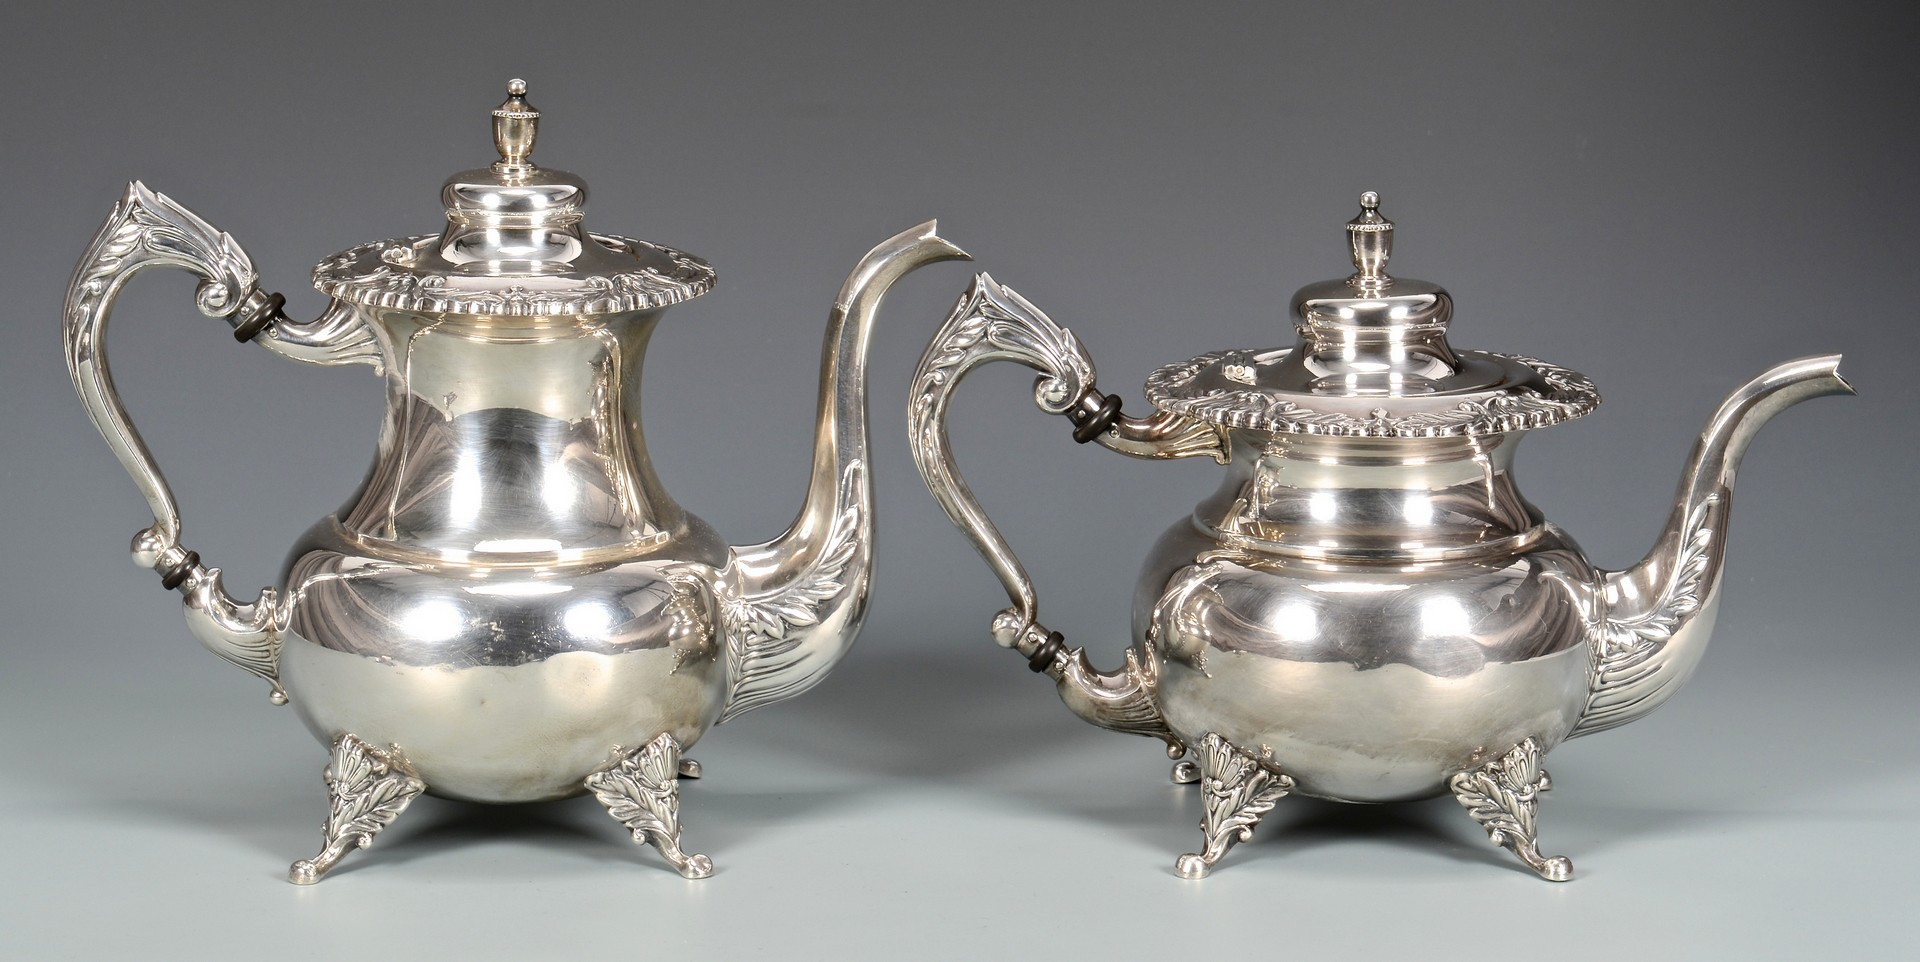 Lot 36: 950 Silver 4-piece Tea Service plus other